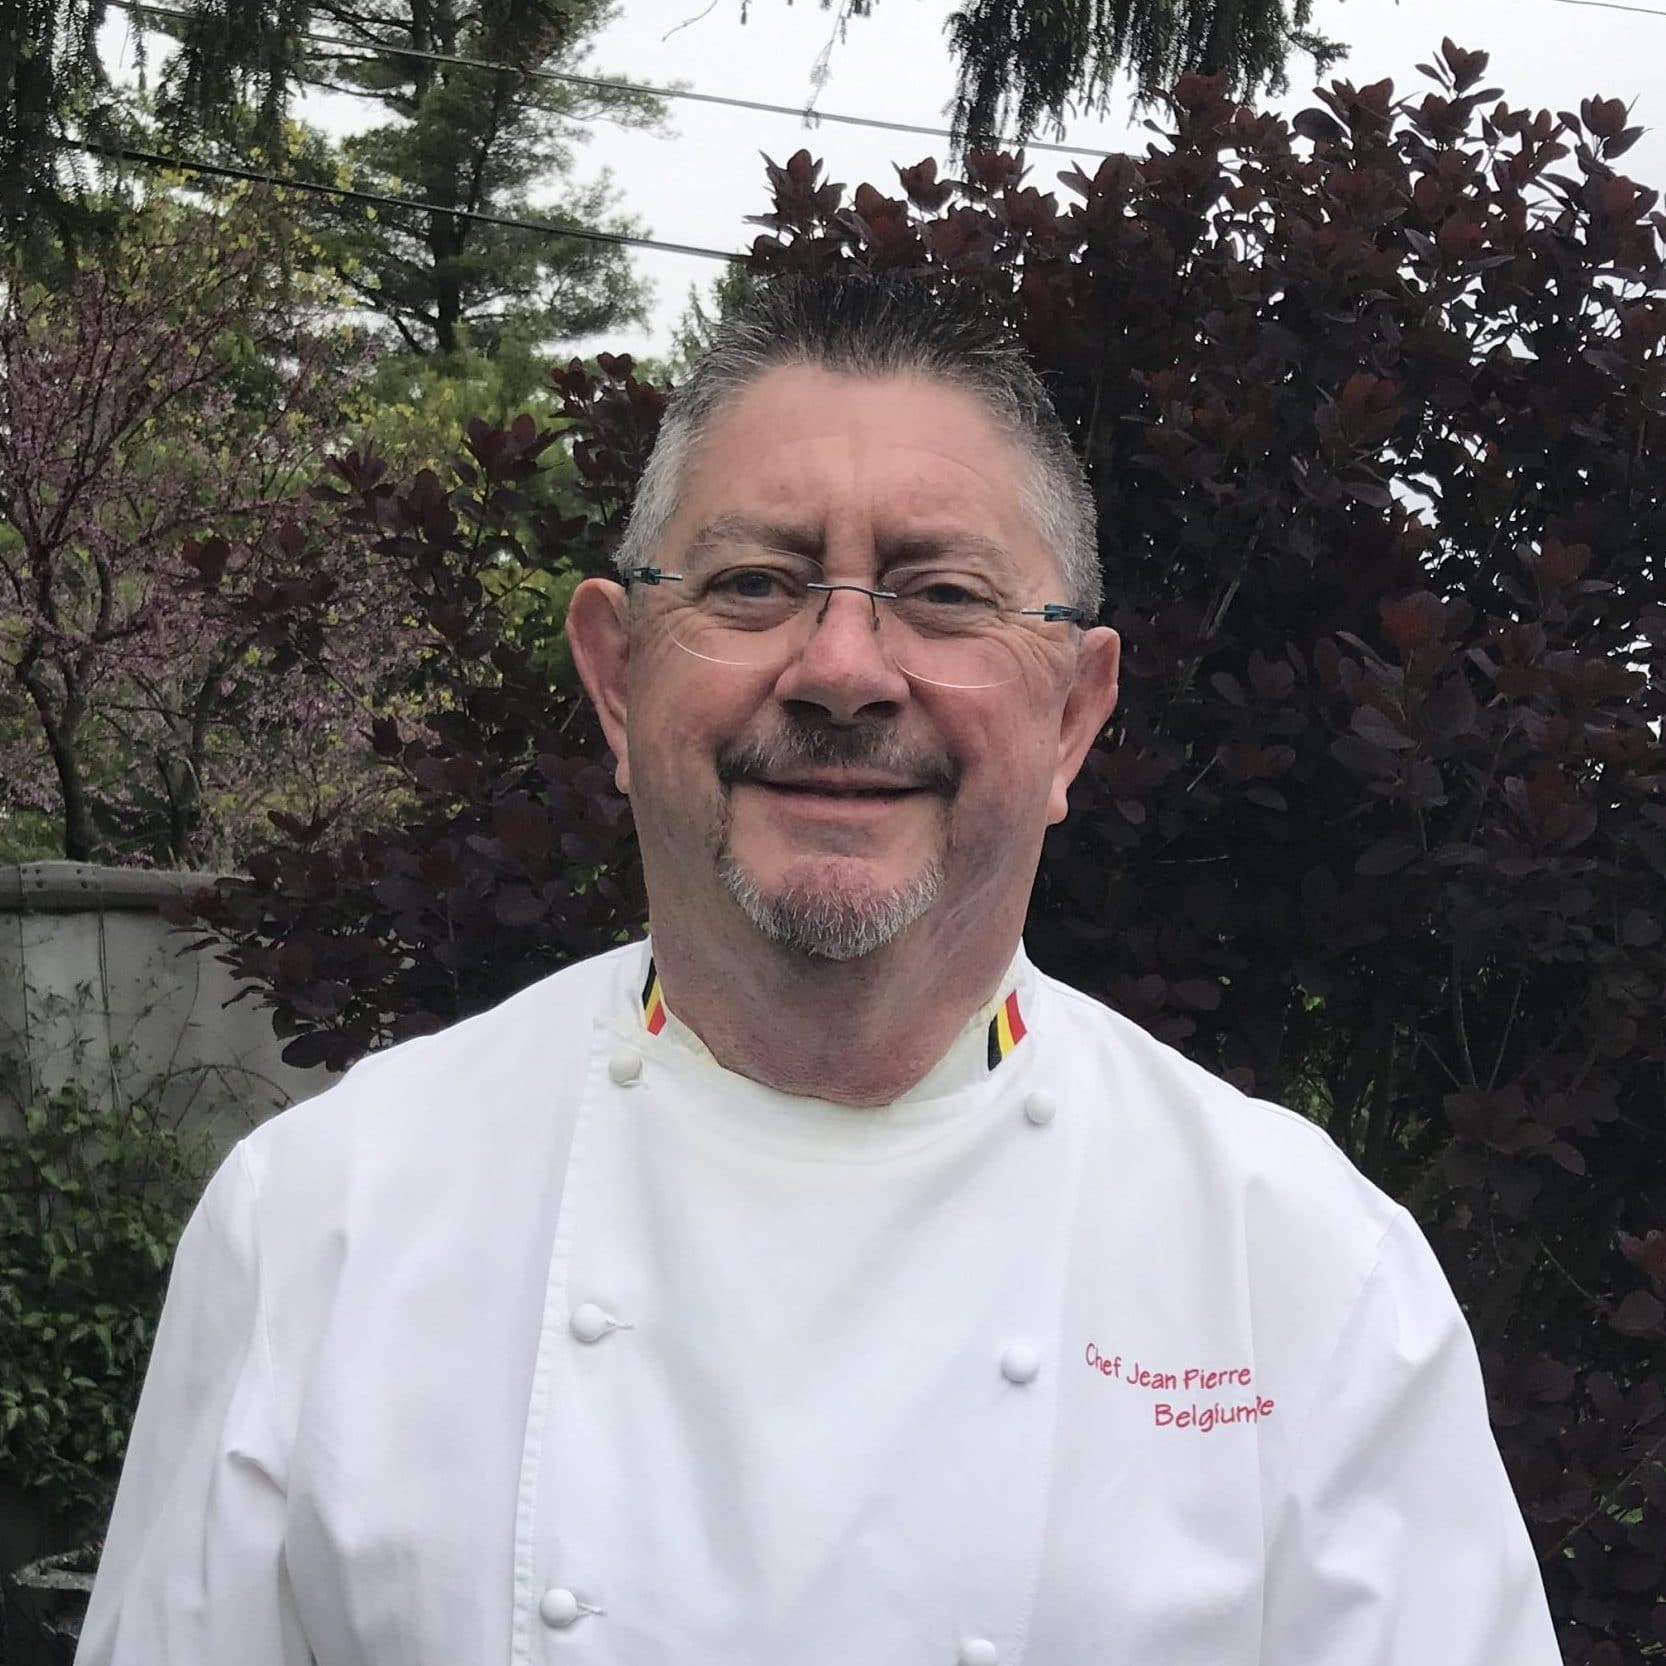 Jean-Pierre Vasaune joins LR as Corporate Chef